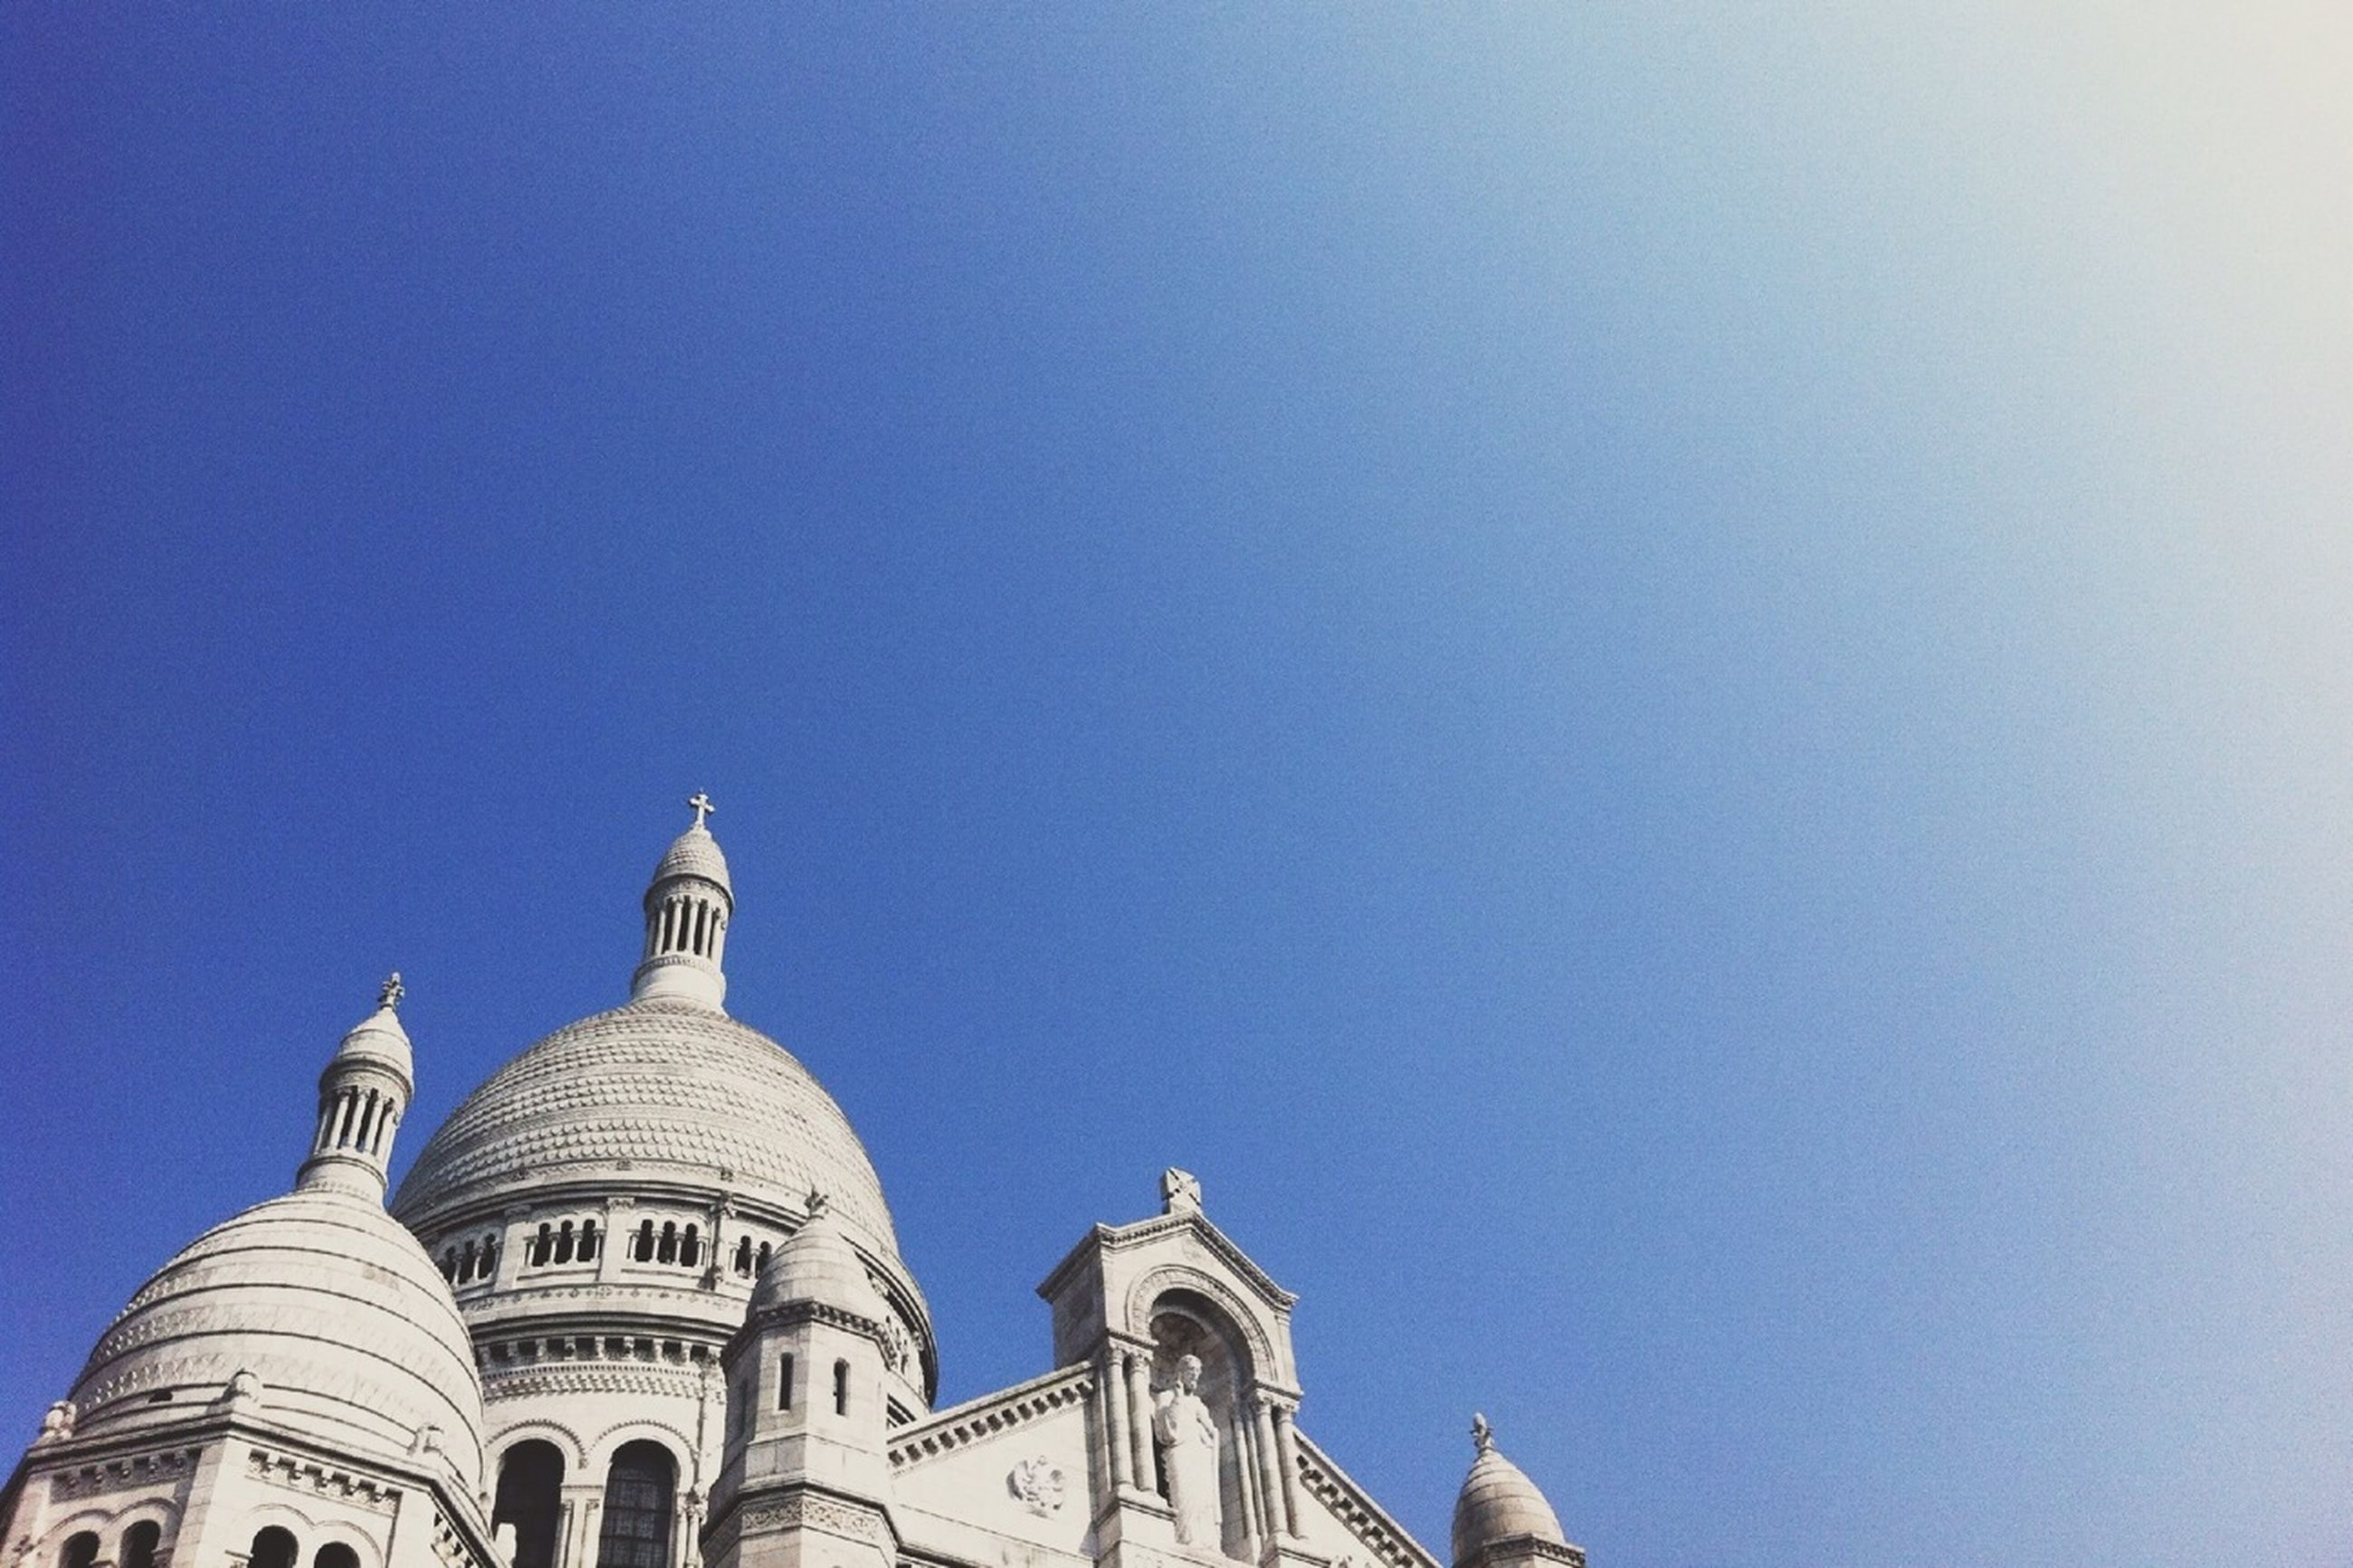 architecture, building exterior, built structure, clear sky, place of worship, religion, dome, spirituality, low angle view, copy space, church, high section, famous place, cathedral, travel destinations, international landmark, blue, travel